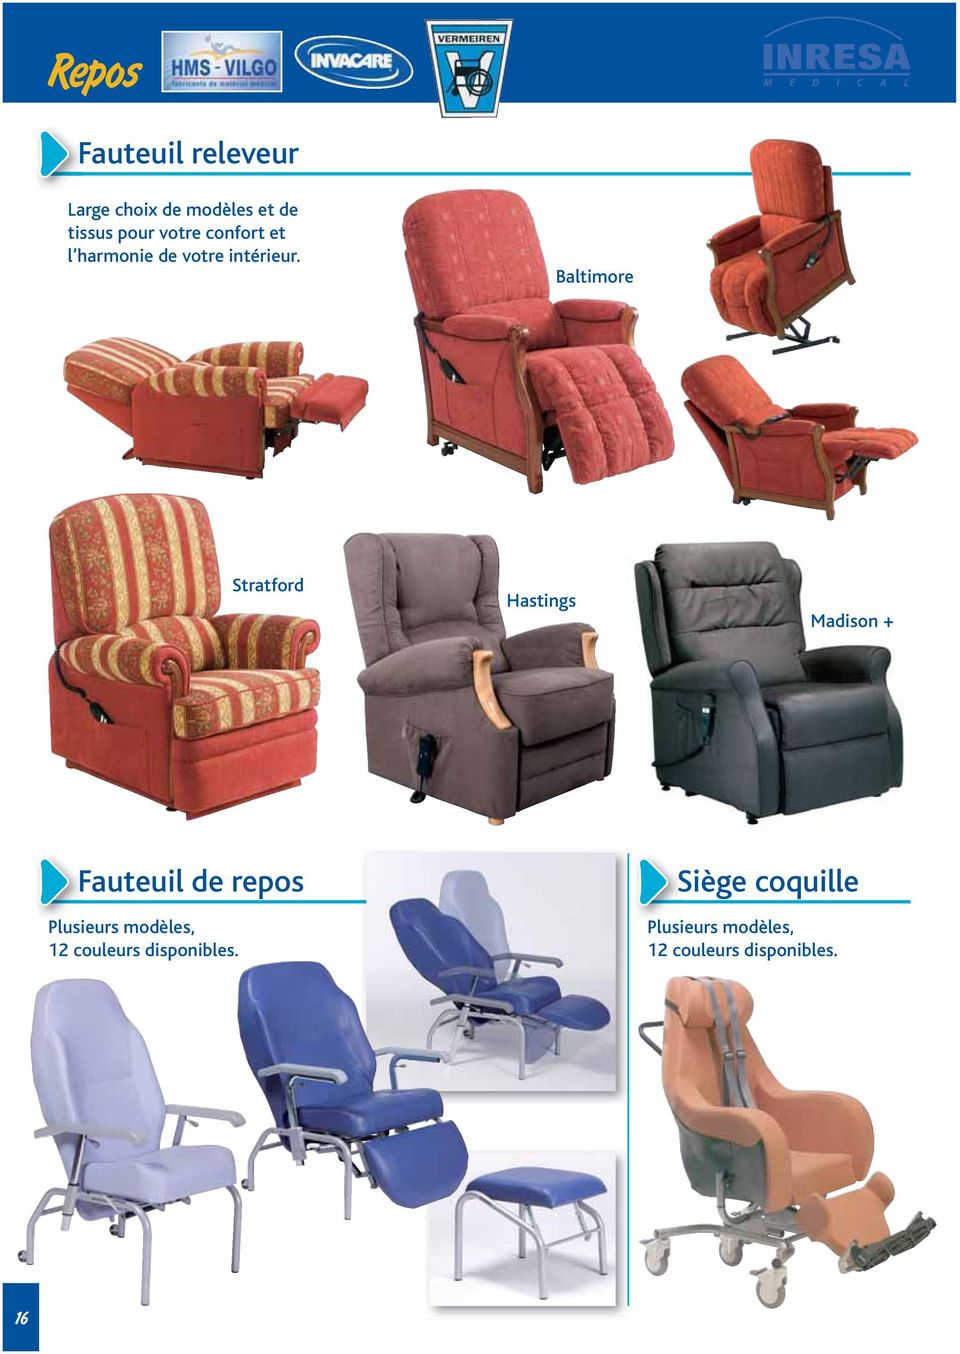 Baltimore Stratford Hastings Madison + Fauteuil de repos Plusieurs